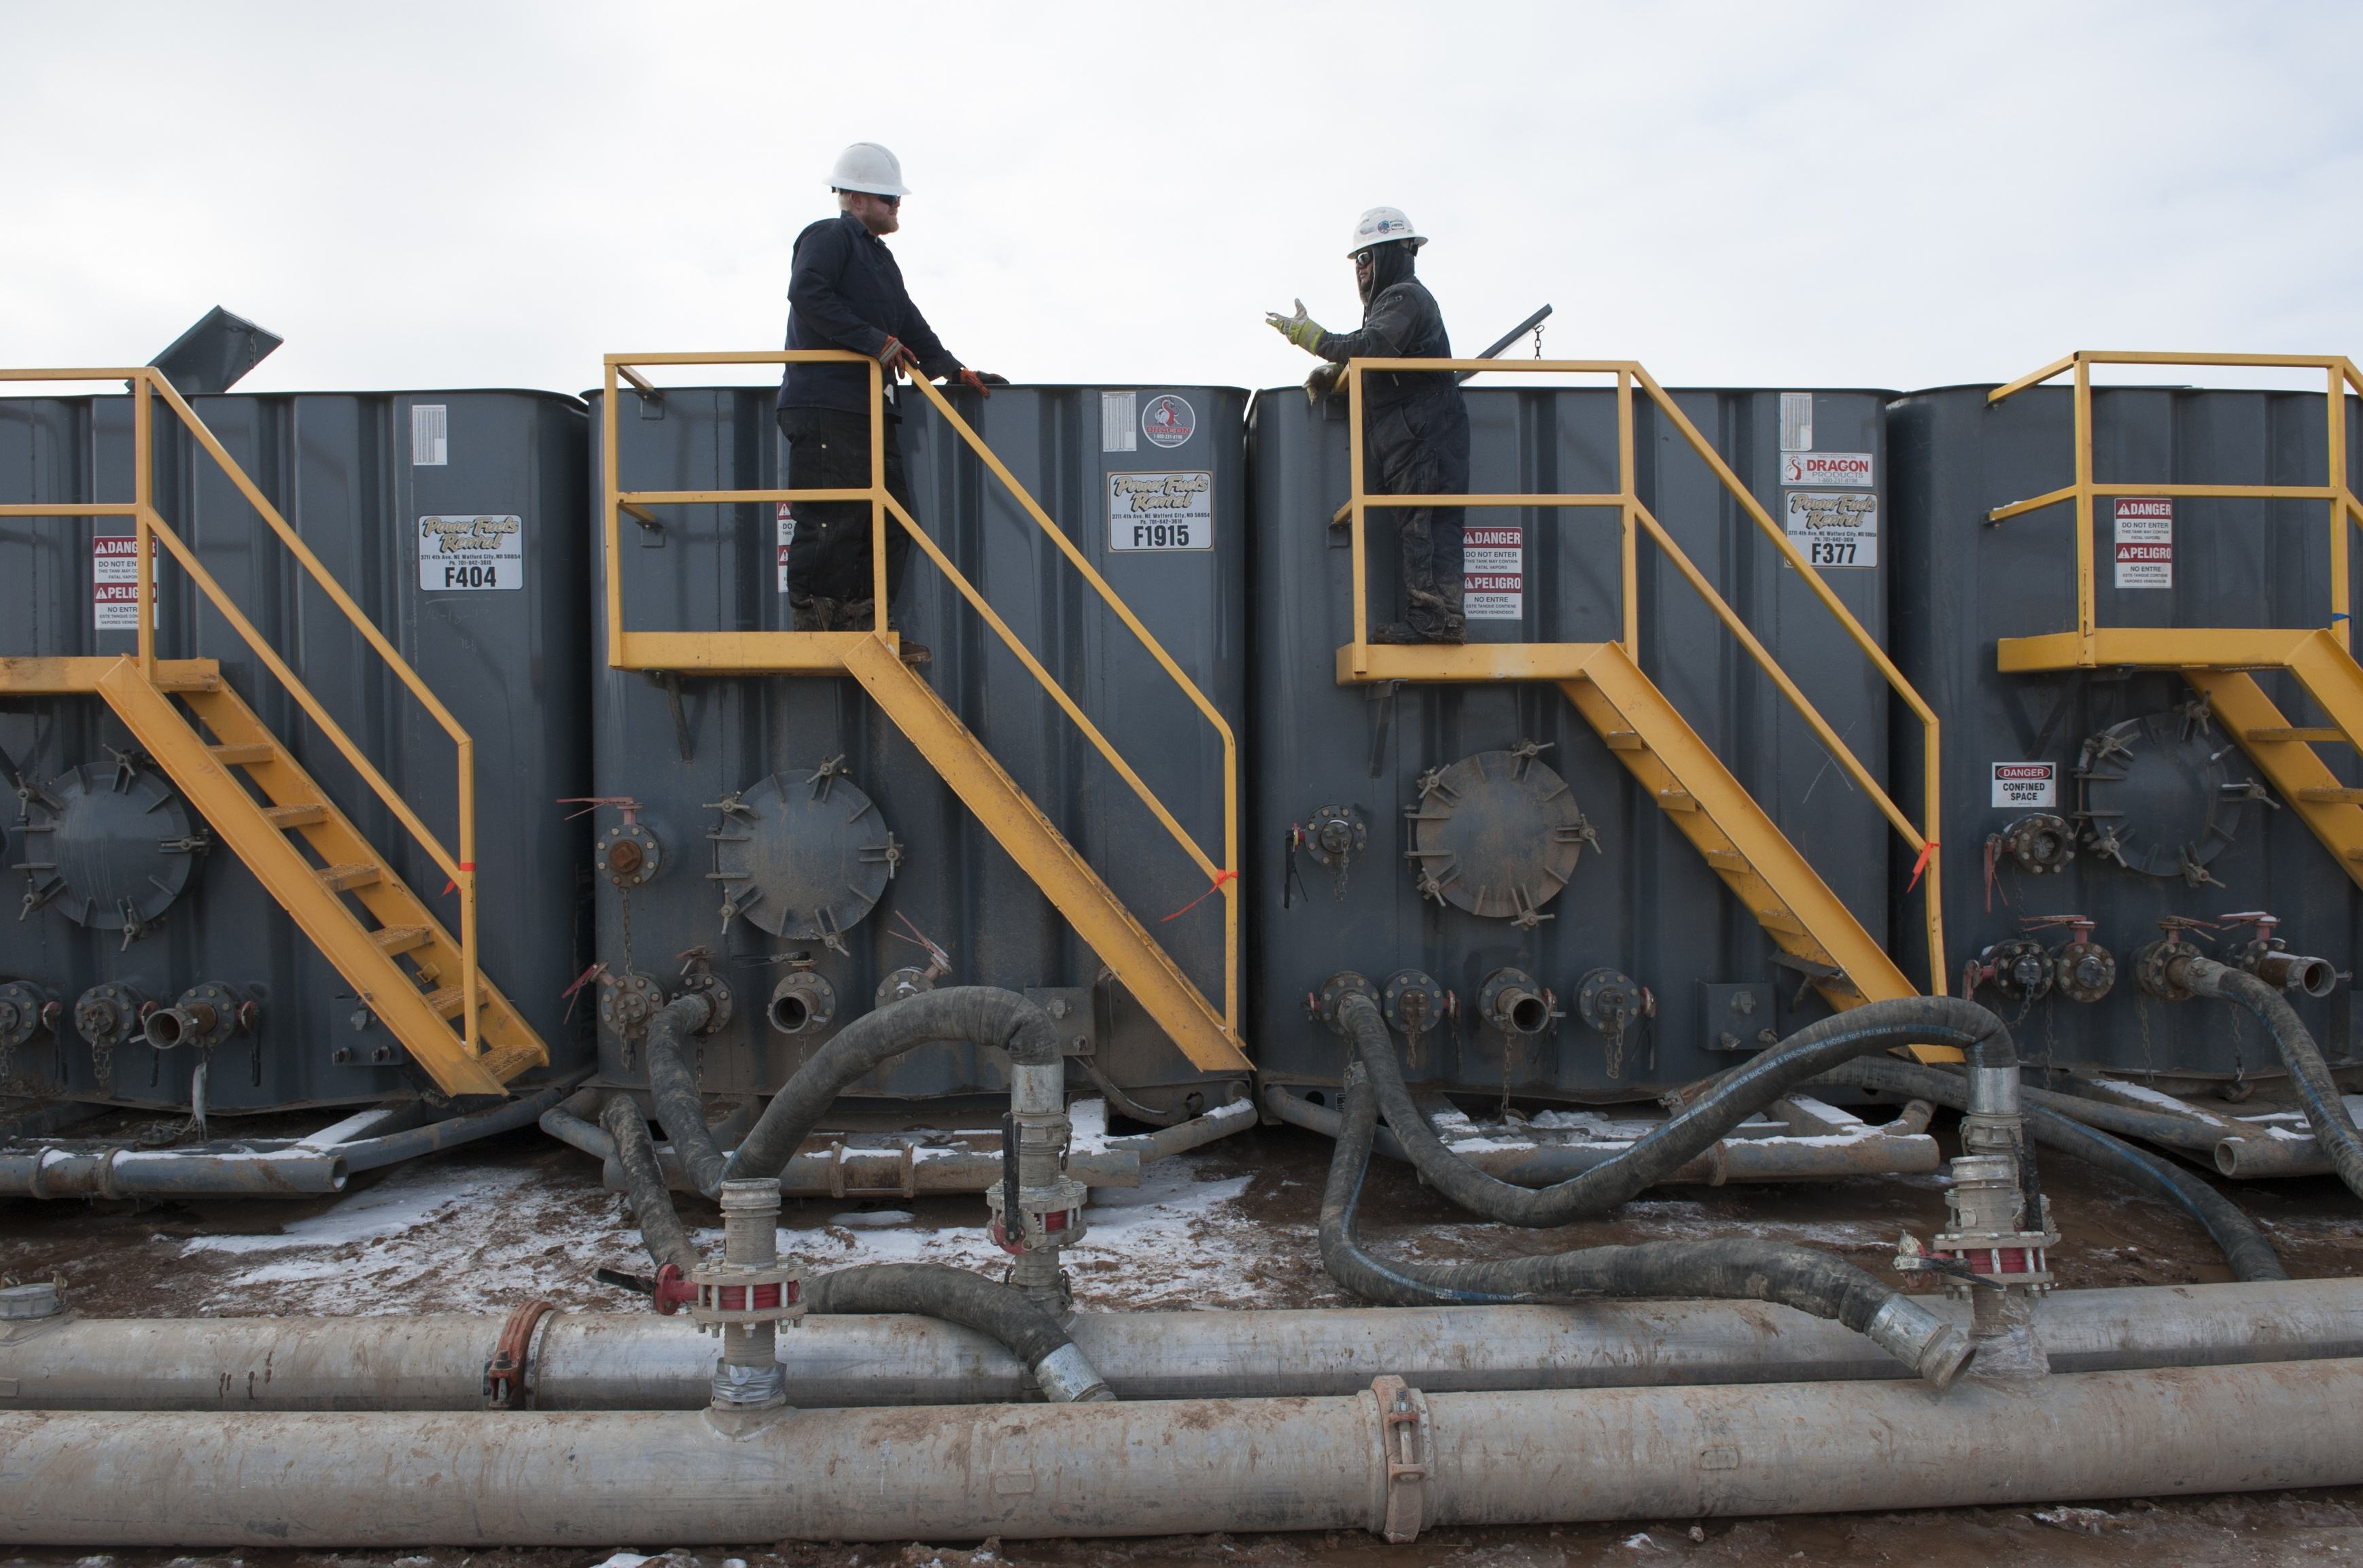 A worker monitors water tanks at a Hess fracking site near Williston